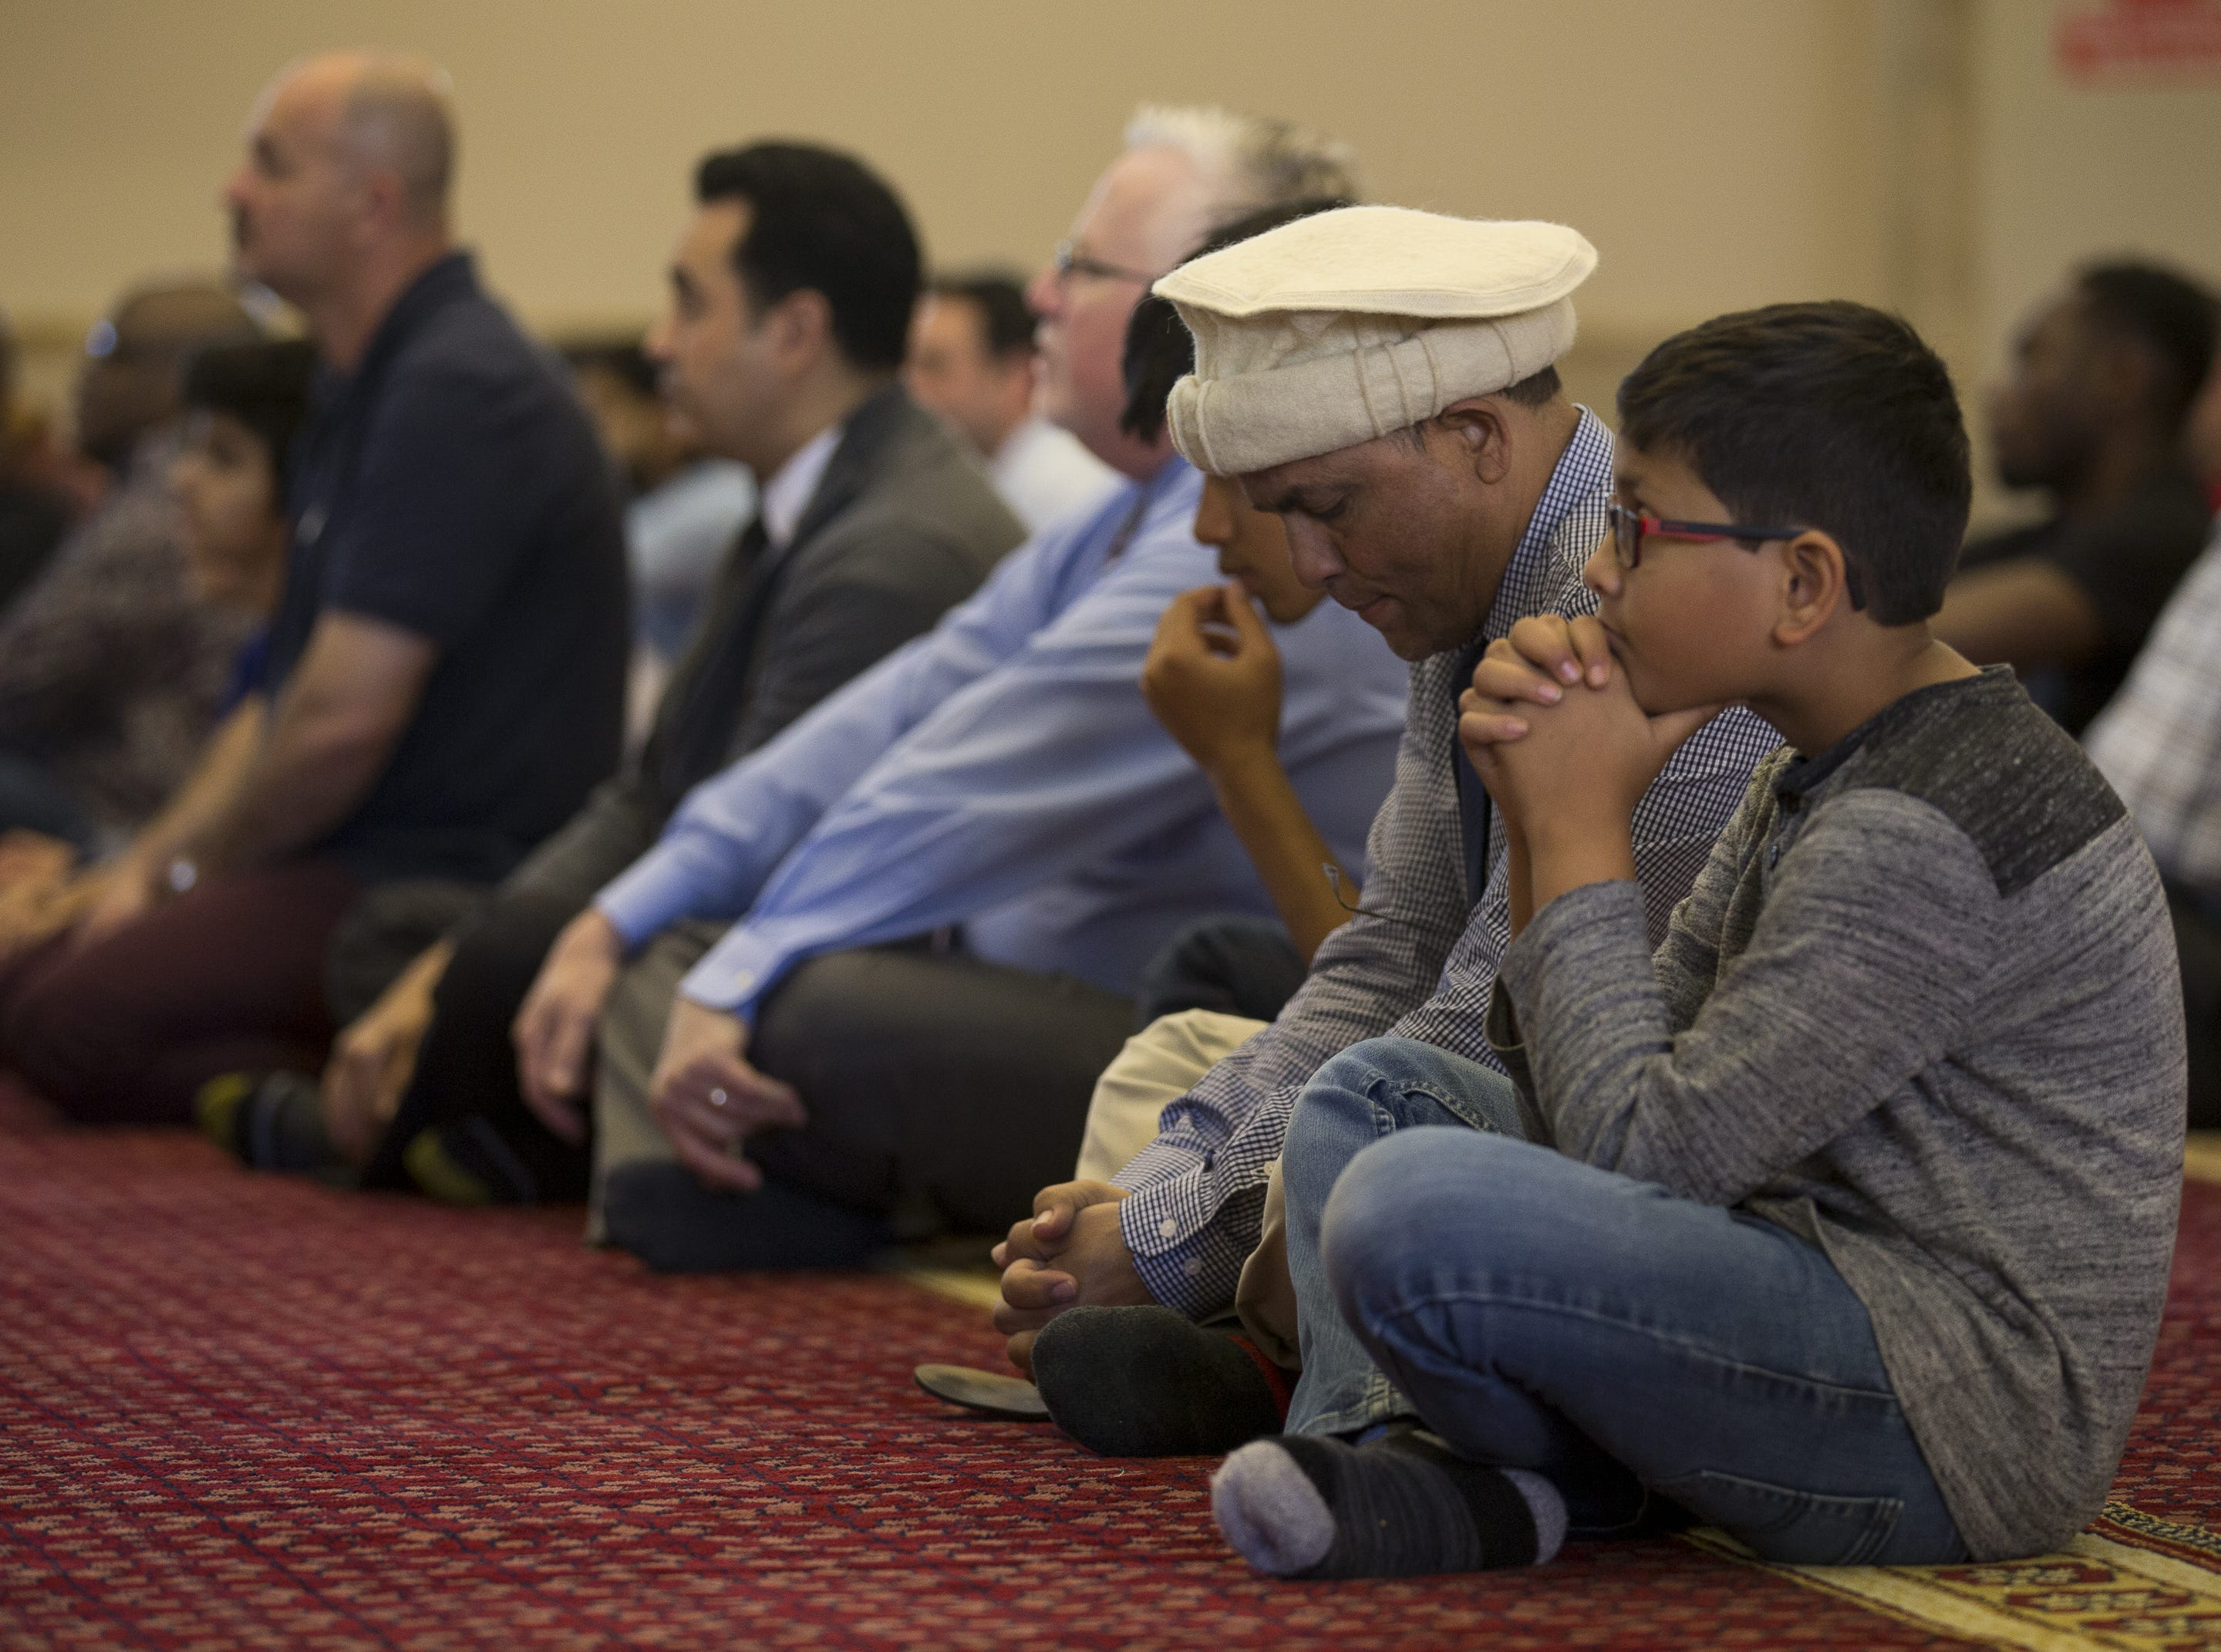 Worshippers pray at the Islamic Center of the North East Valley in Scottsdale on March 15, 2019. The prayer addressed the shooting in New Zealand, which killed 49 people worshipping at mosques.